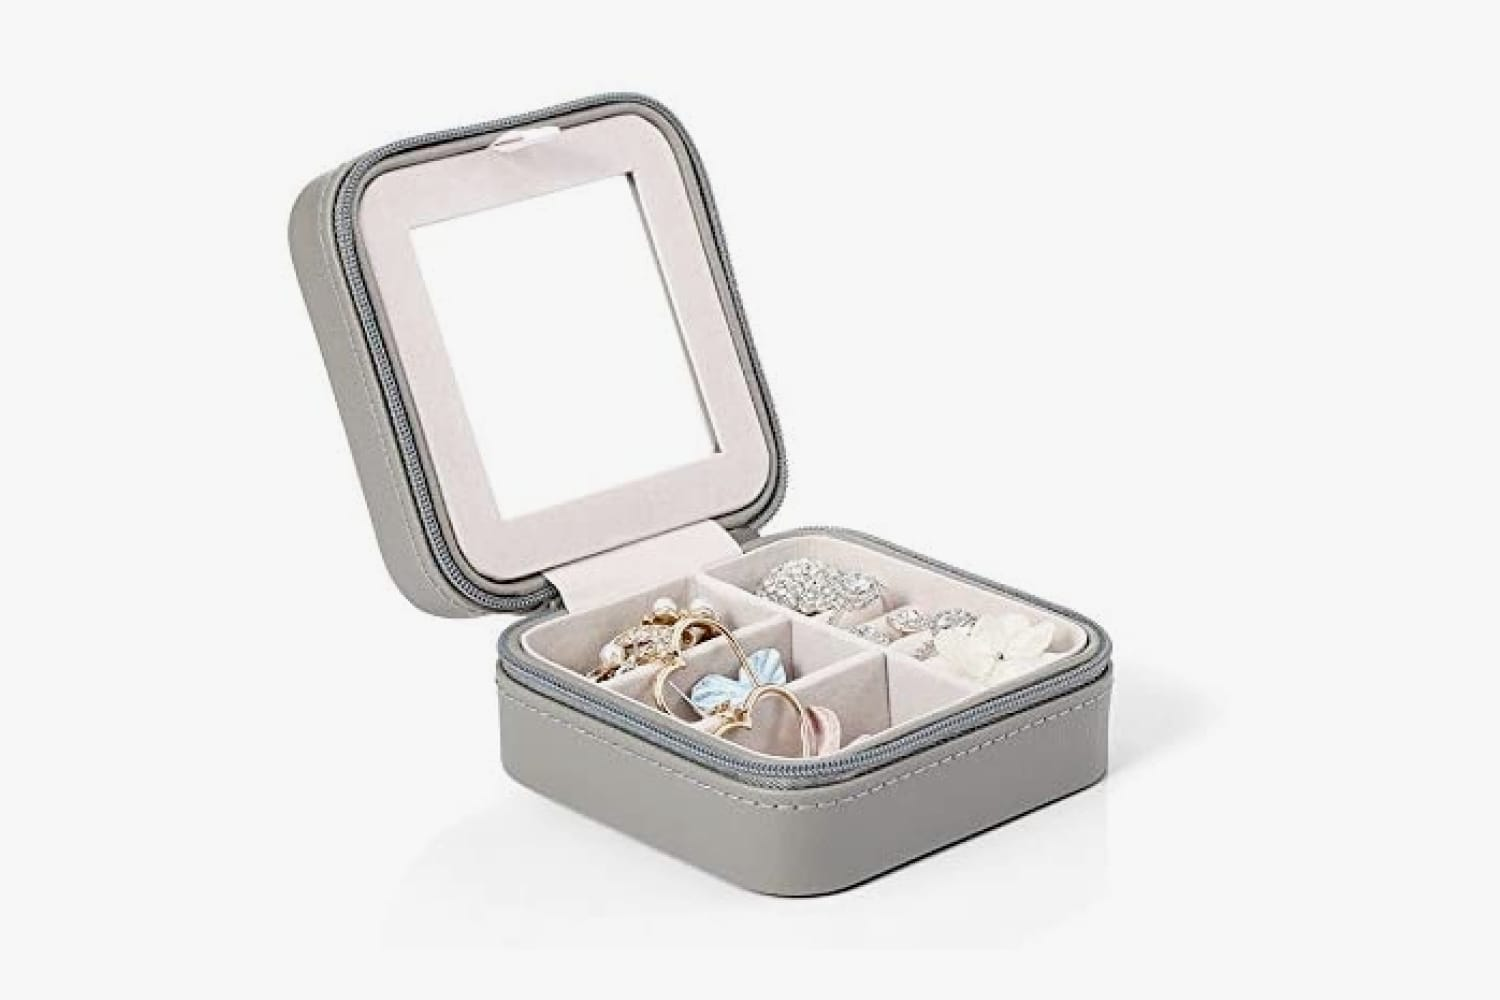 Vlando Portable Travel Jewelry Box